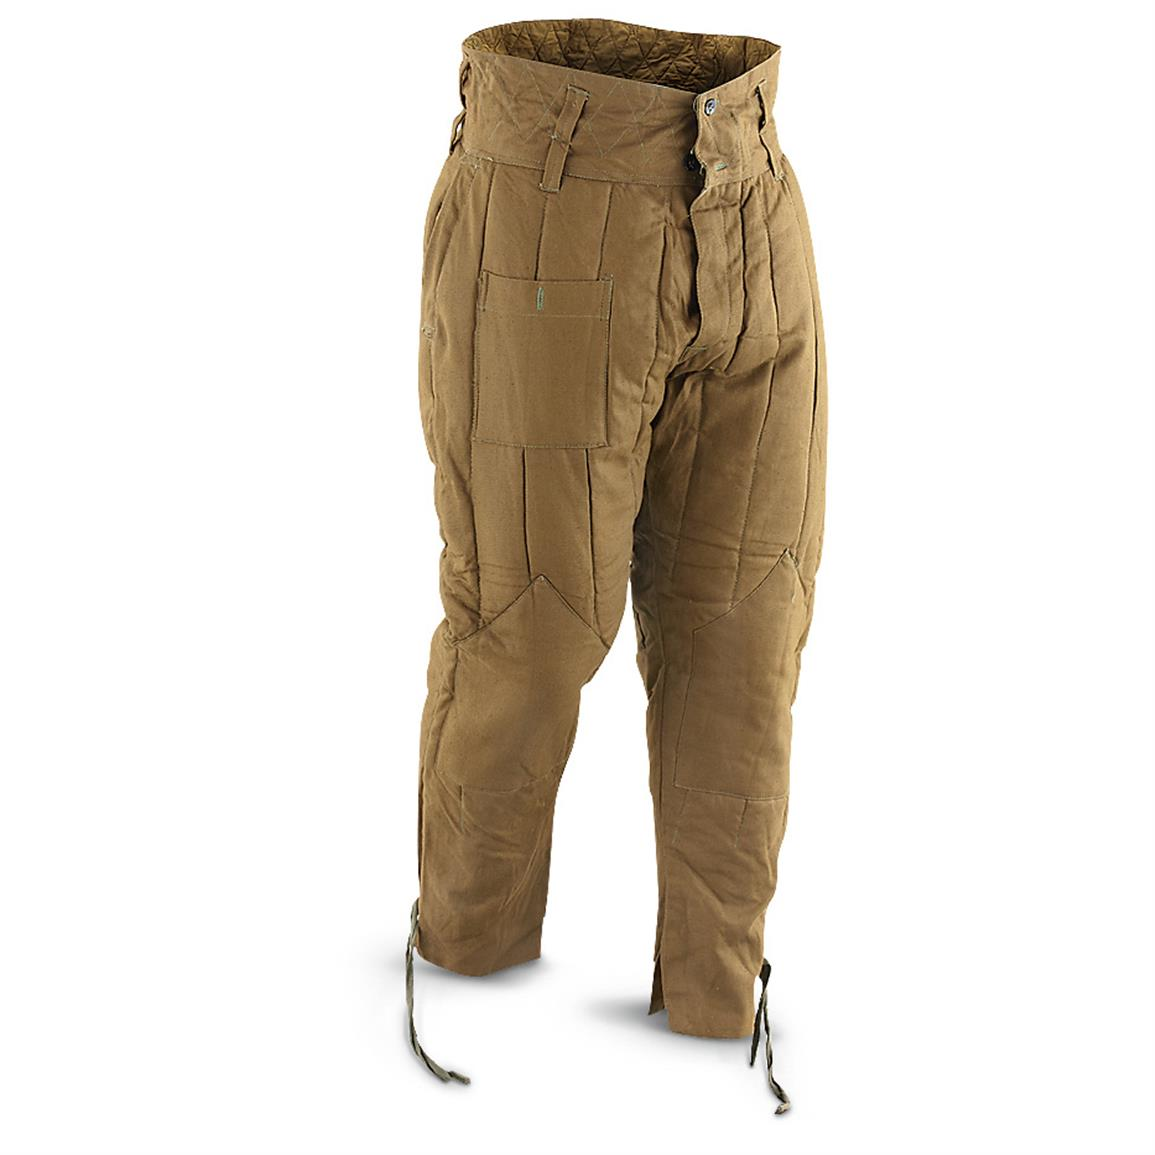 New Russian Military Surplus M43-style Pants